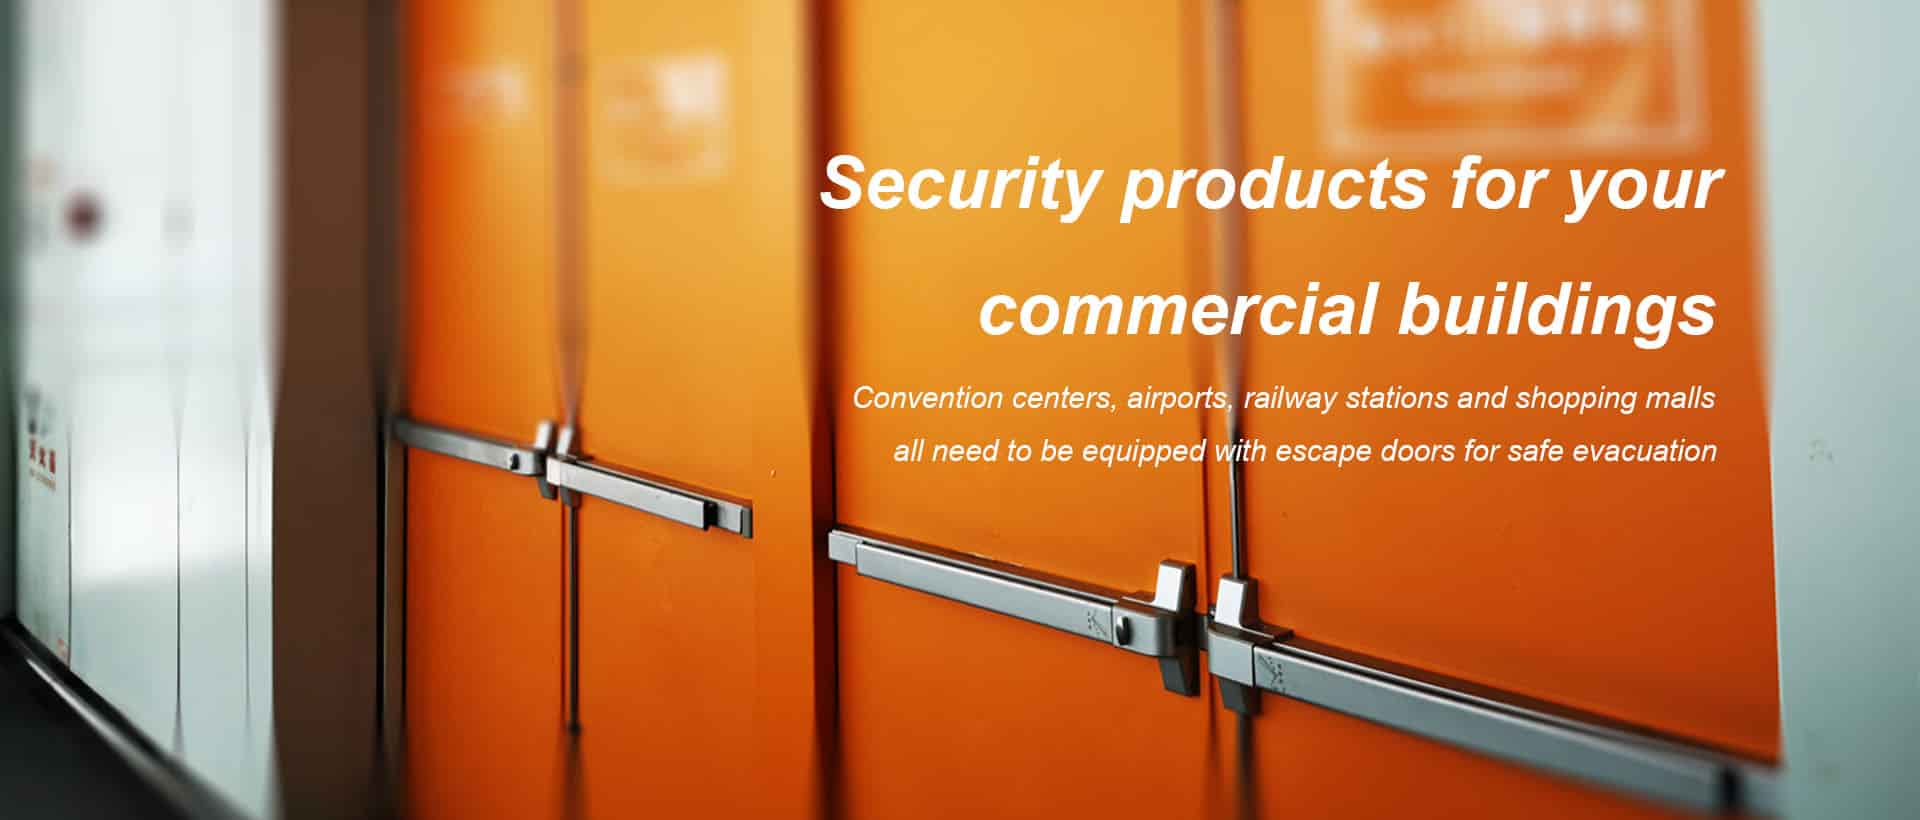 Security products for your commercial buildings